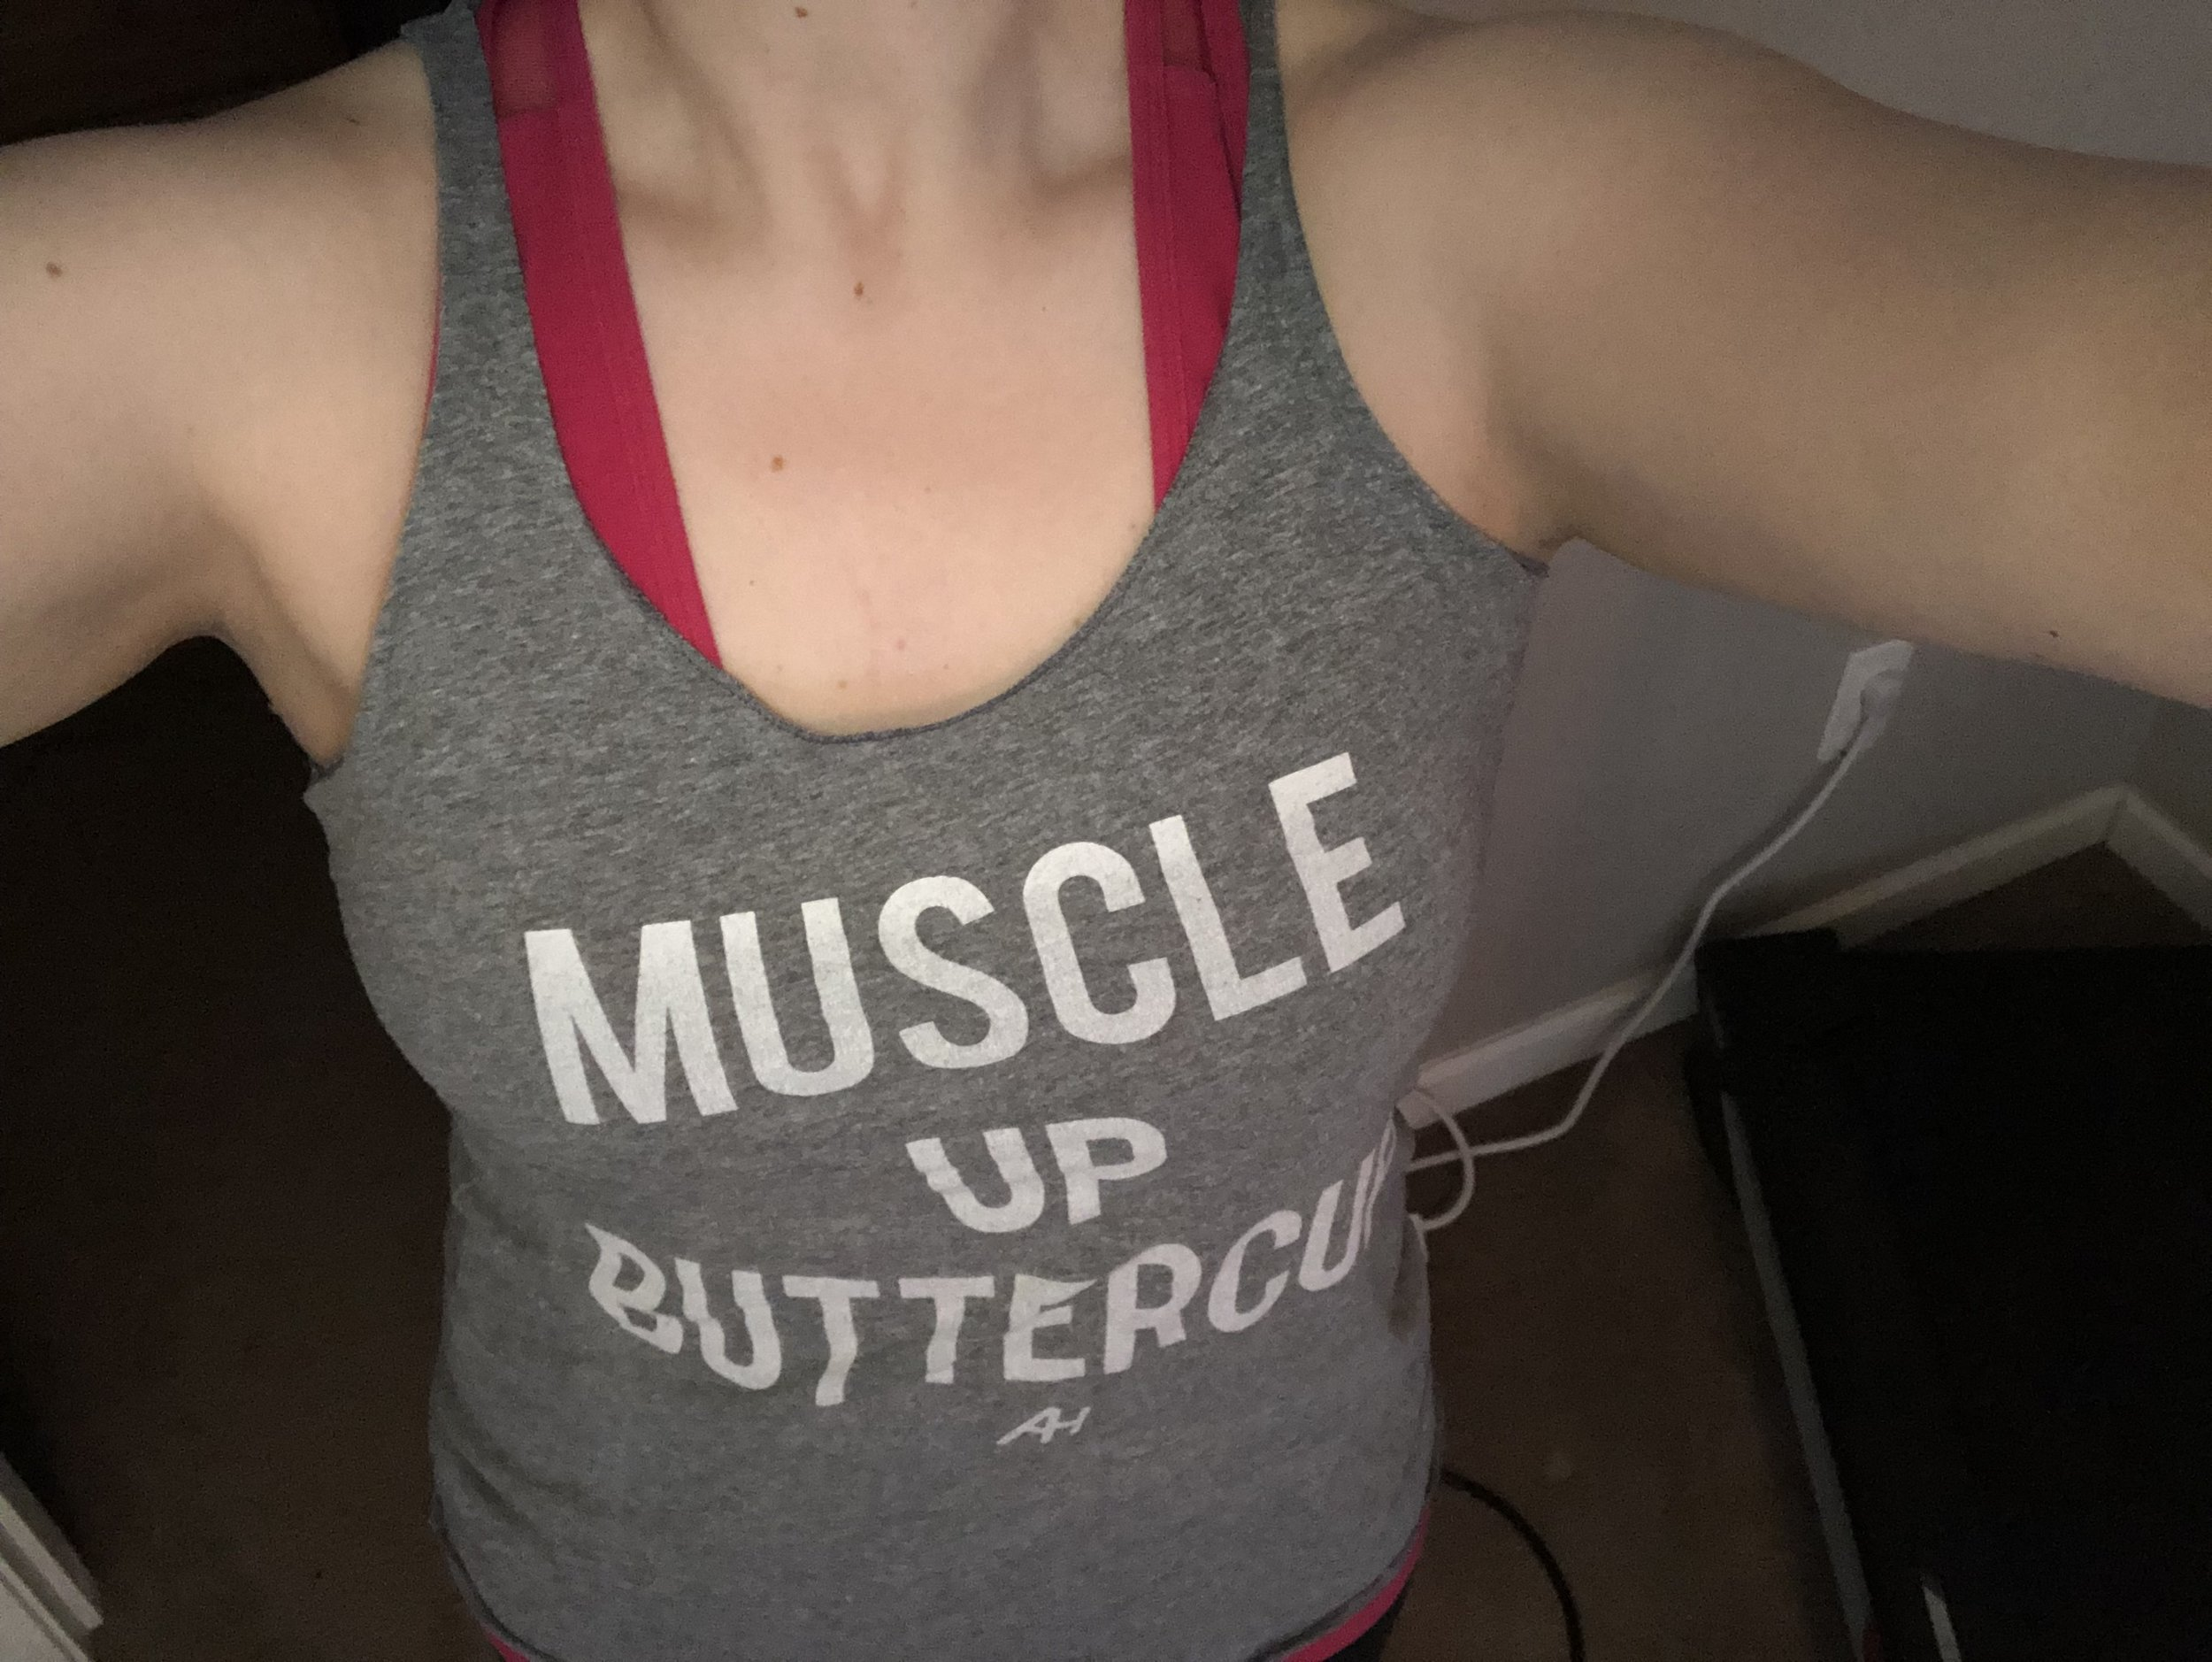 Motivational workout tank is not essential, but highly recommended